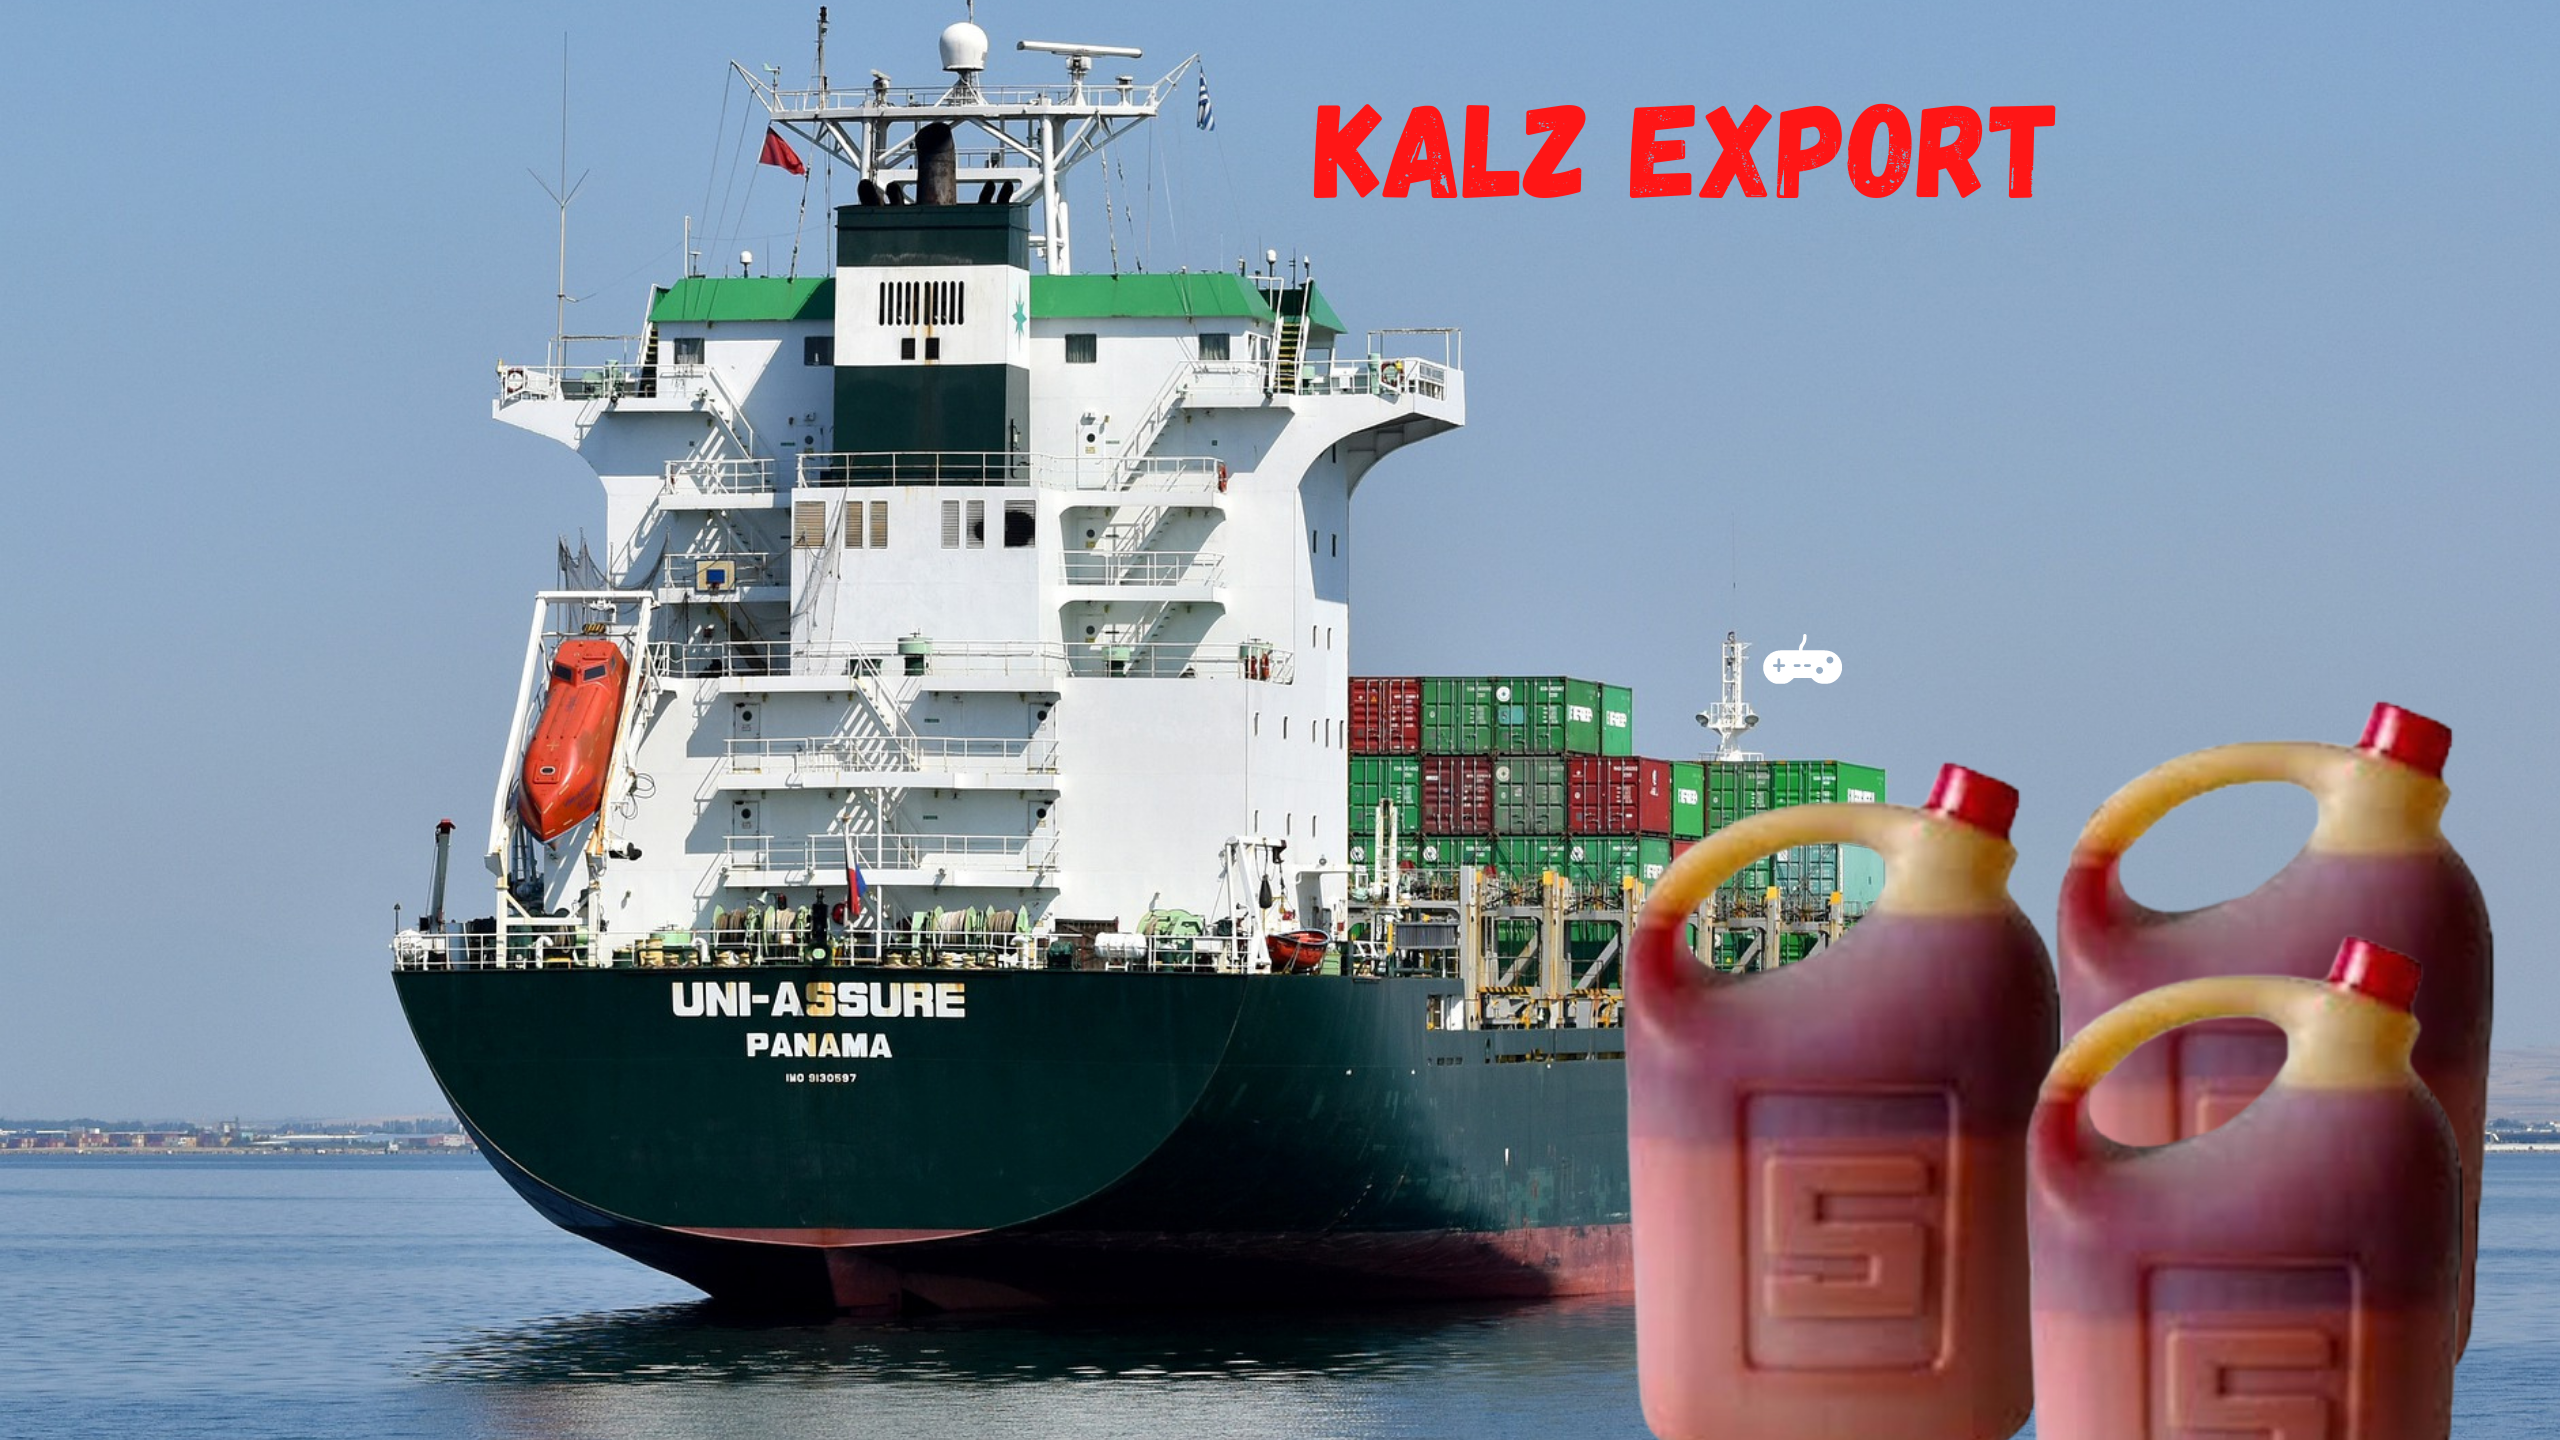 PALM OIL PACKAGING AND EXPORT